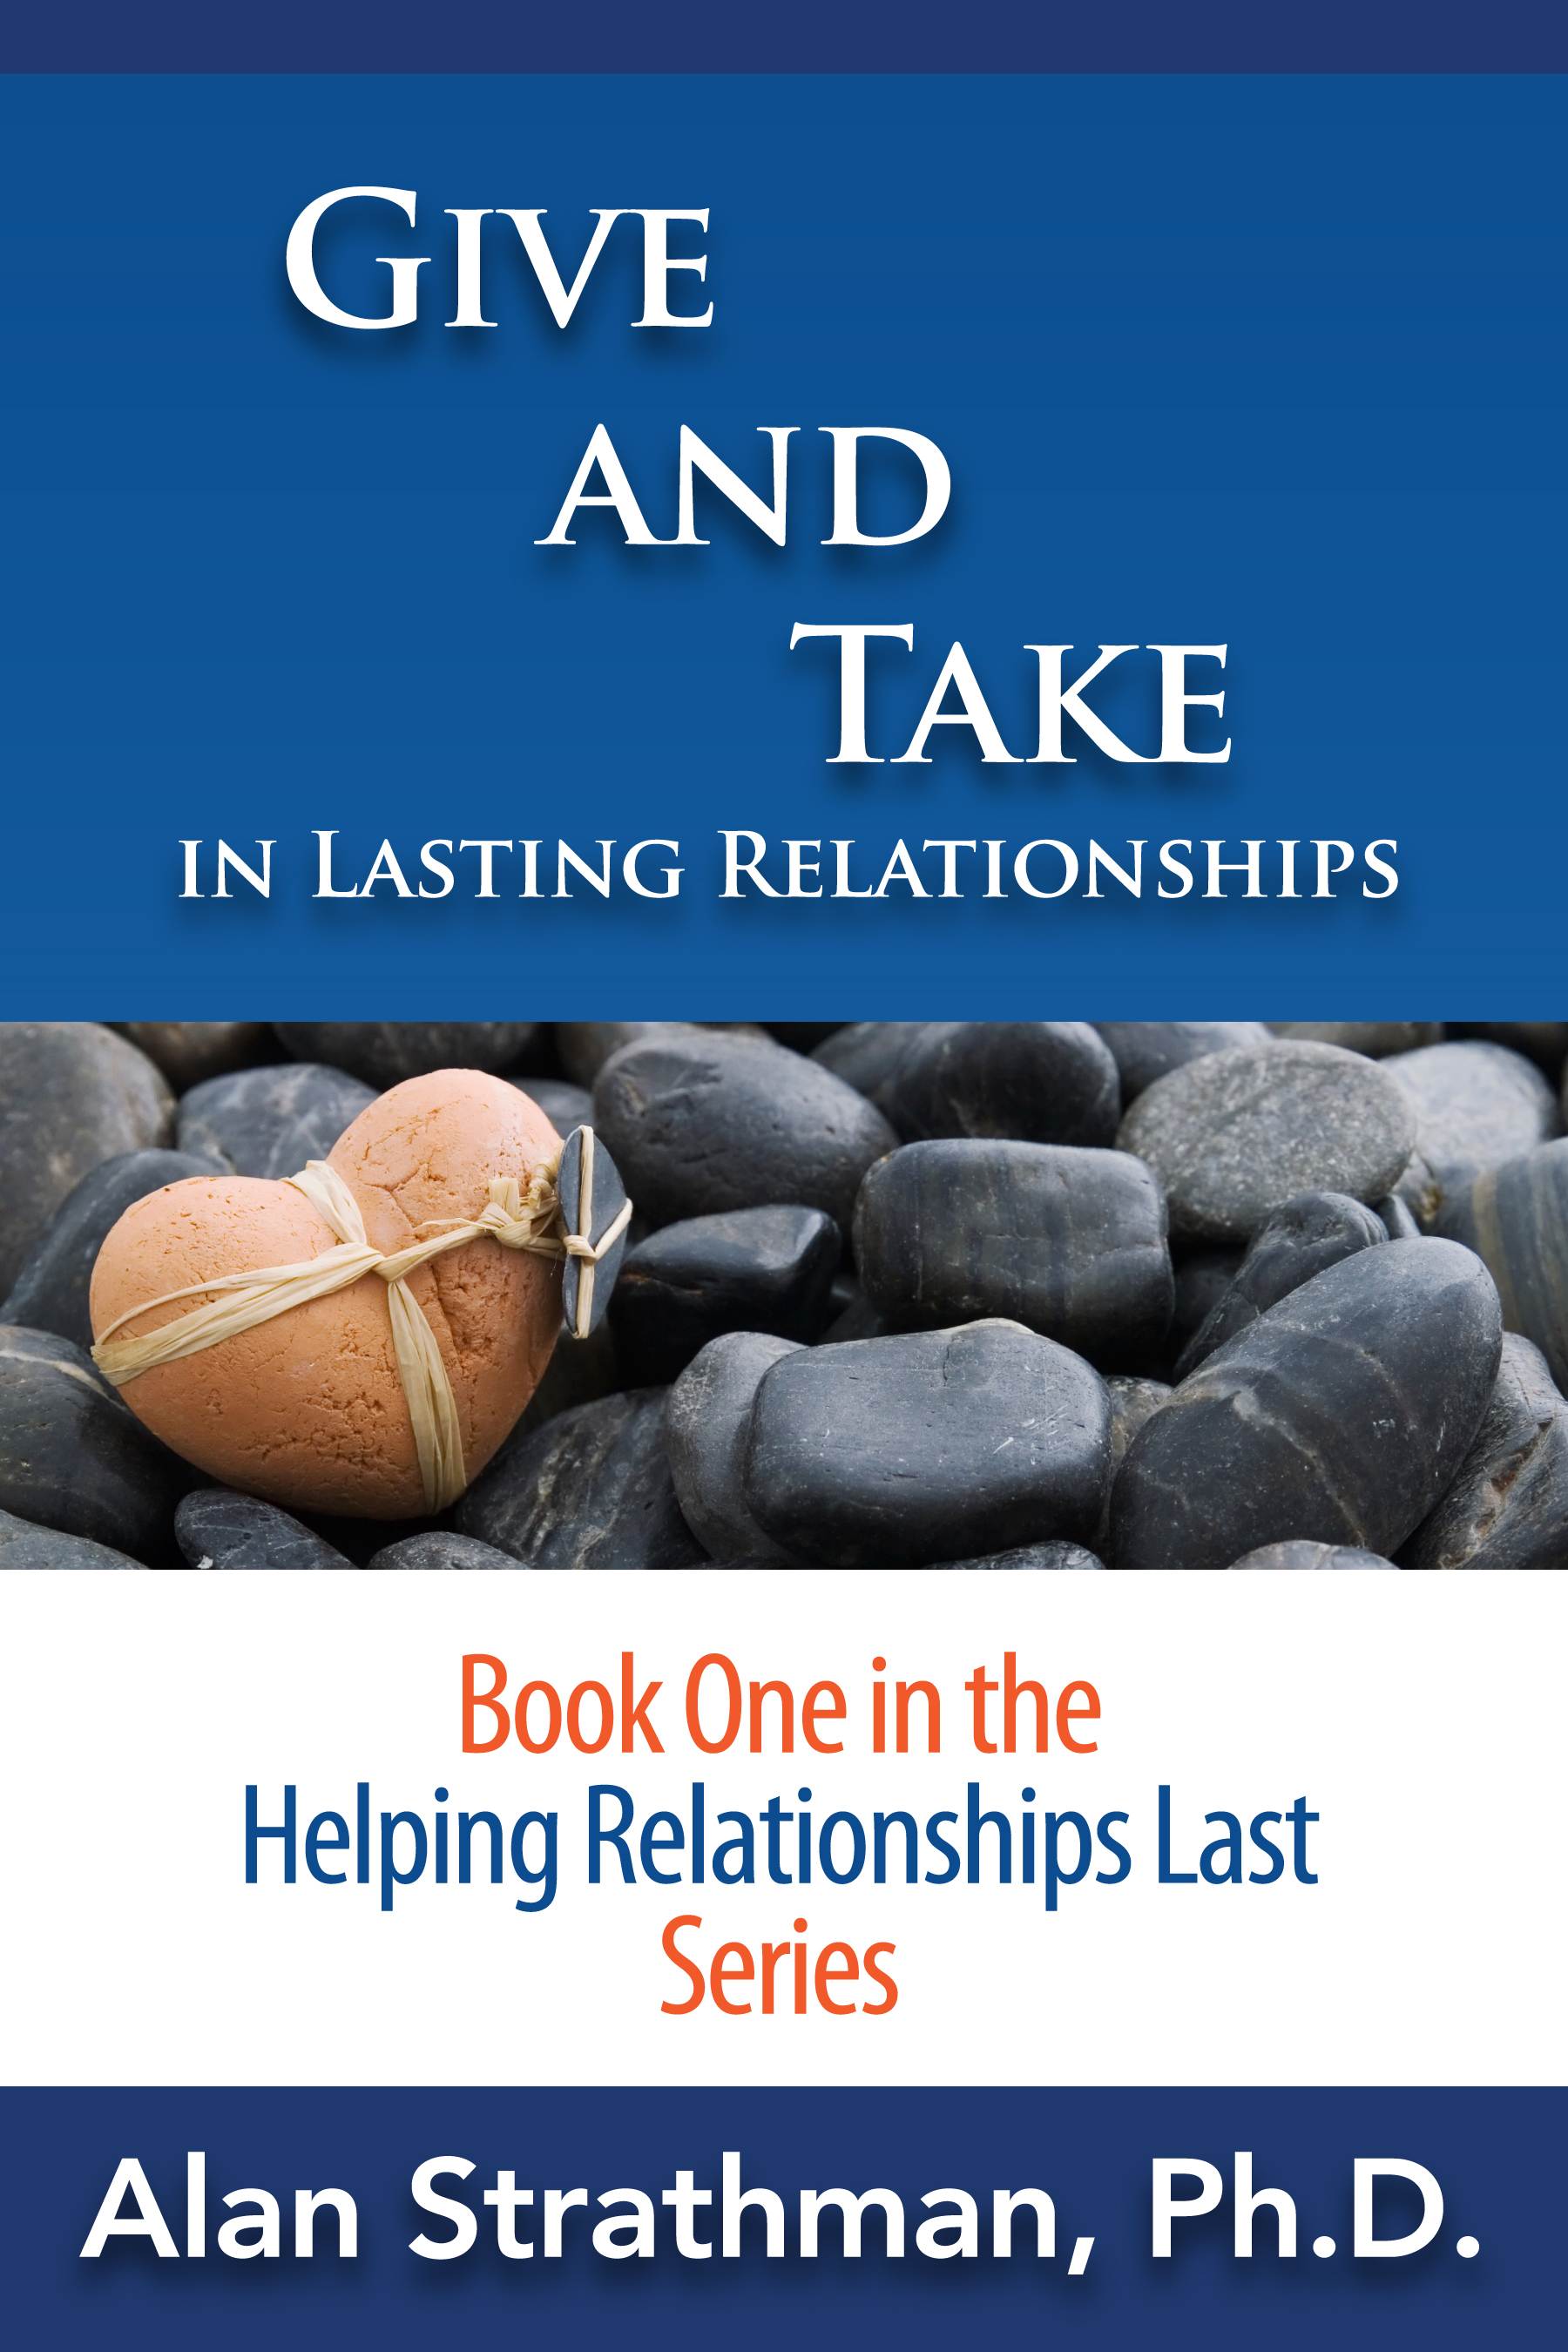 Give and Take in Lasting Relationships - book cover